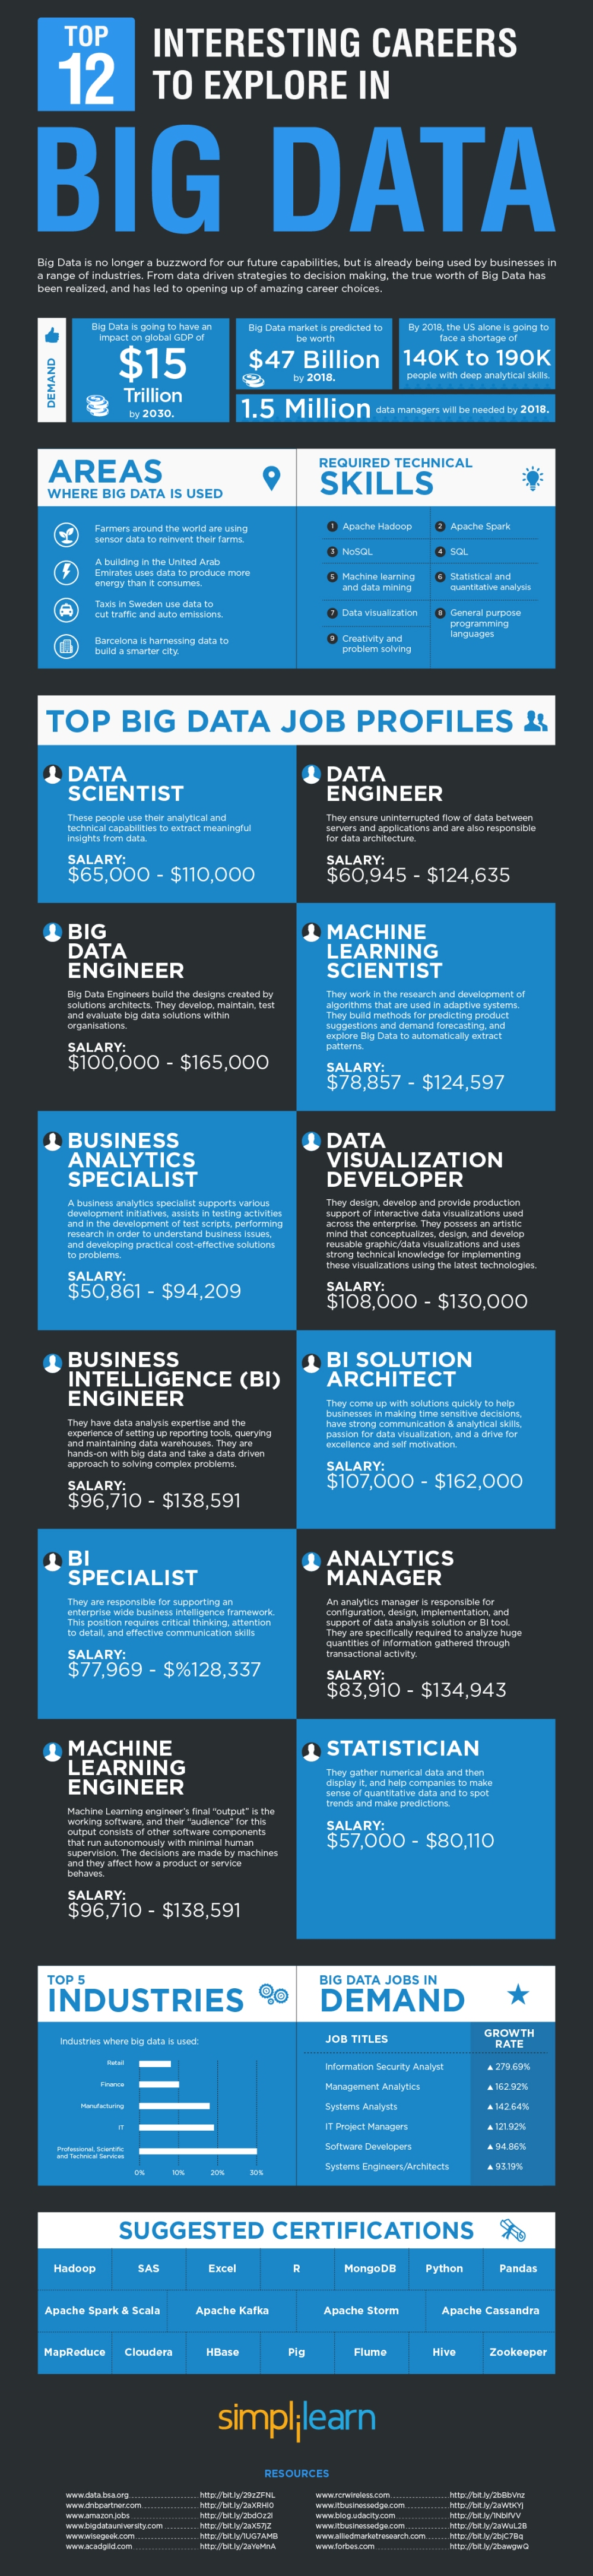 Top-12-interesting-careers-to-explore-in-bigdata-2016.jpg